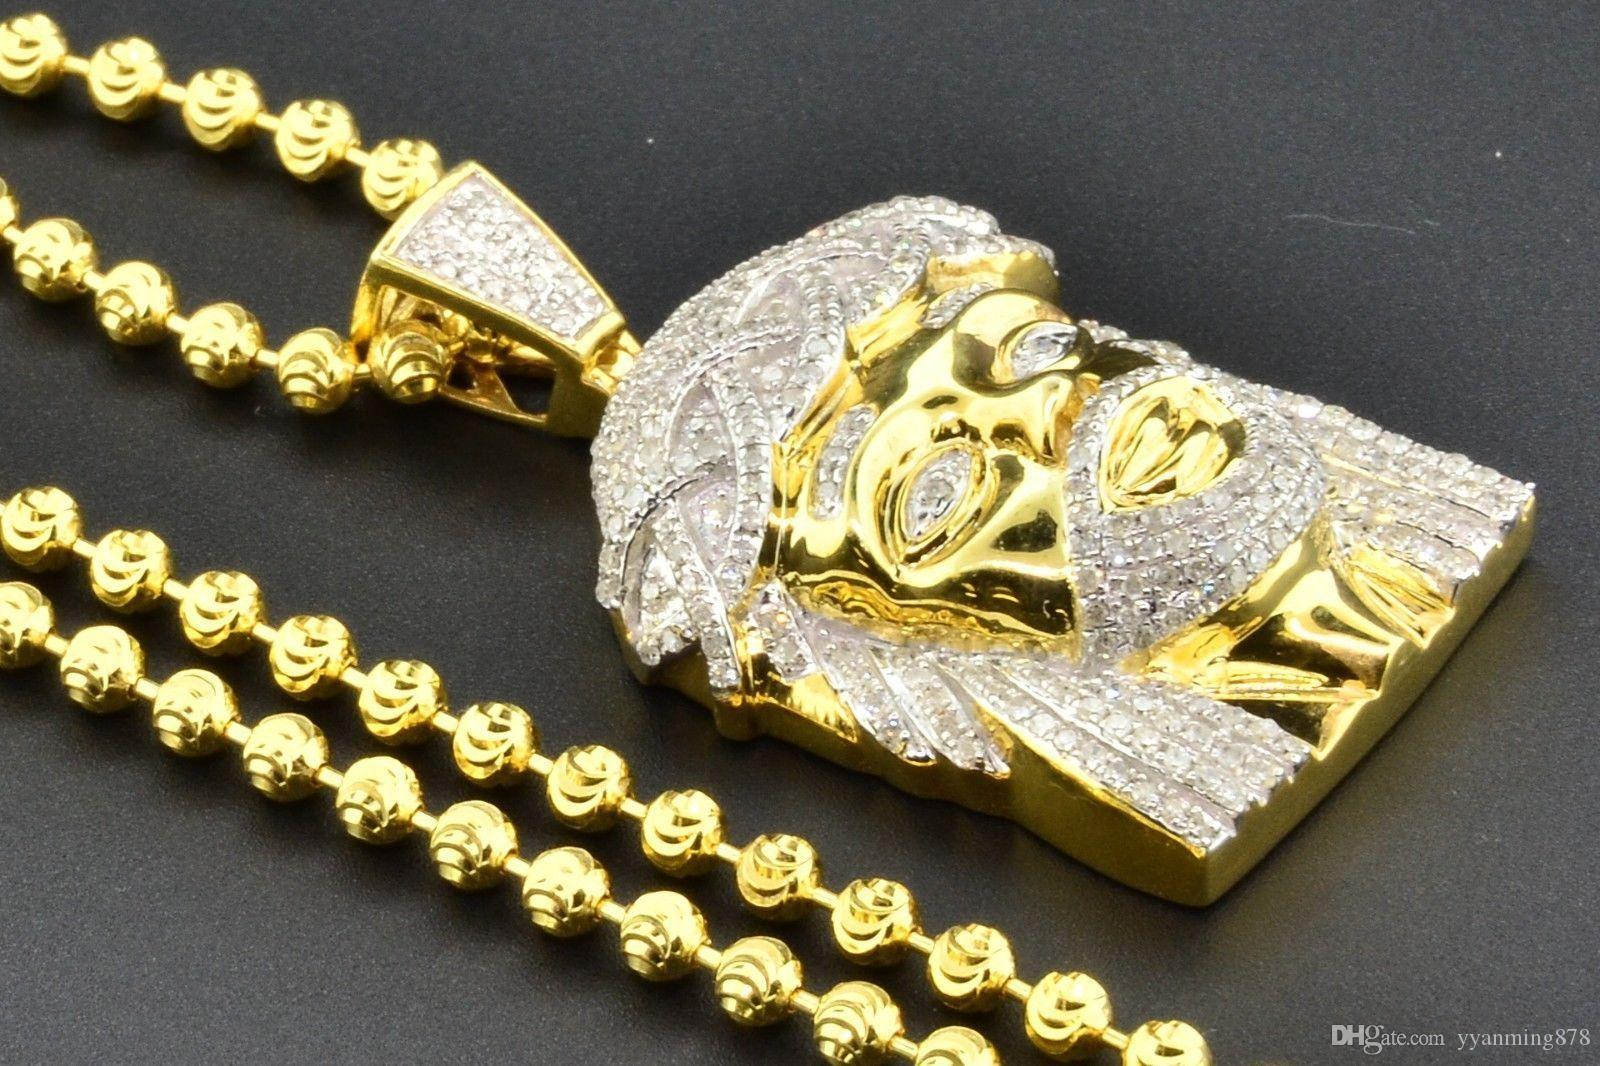 Wholesale diamond mini jesus face pendant piece 925 yellow finish 1 wholesale diamond mini jesus face pendant piece 925 yellow finish 1 ct charm chain set gold chains for men name pendant necklace from yyanming878 aloadofball Image collections